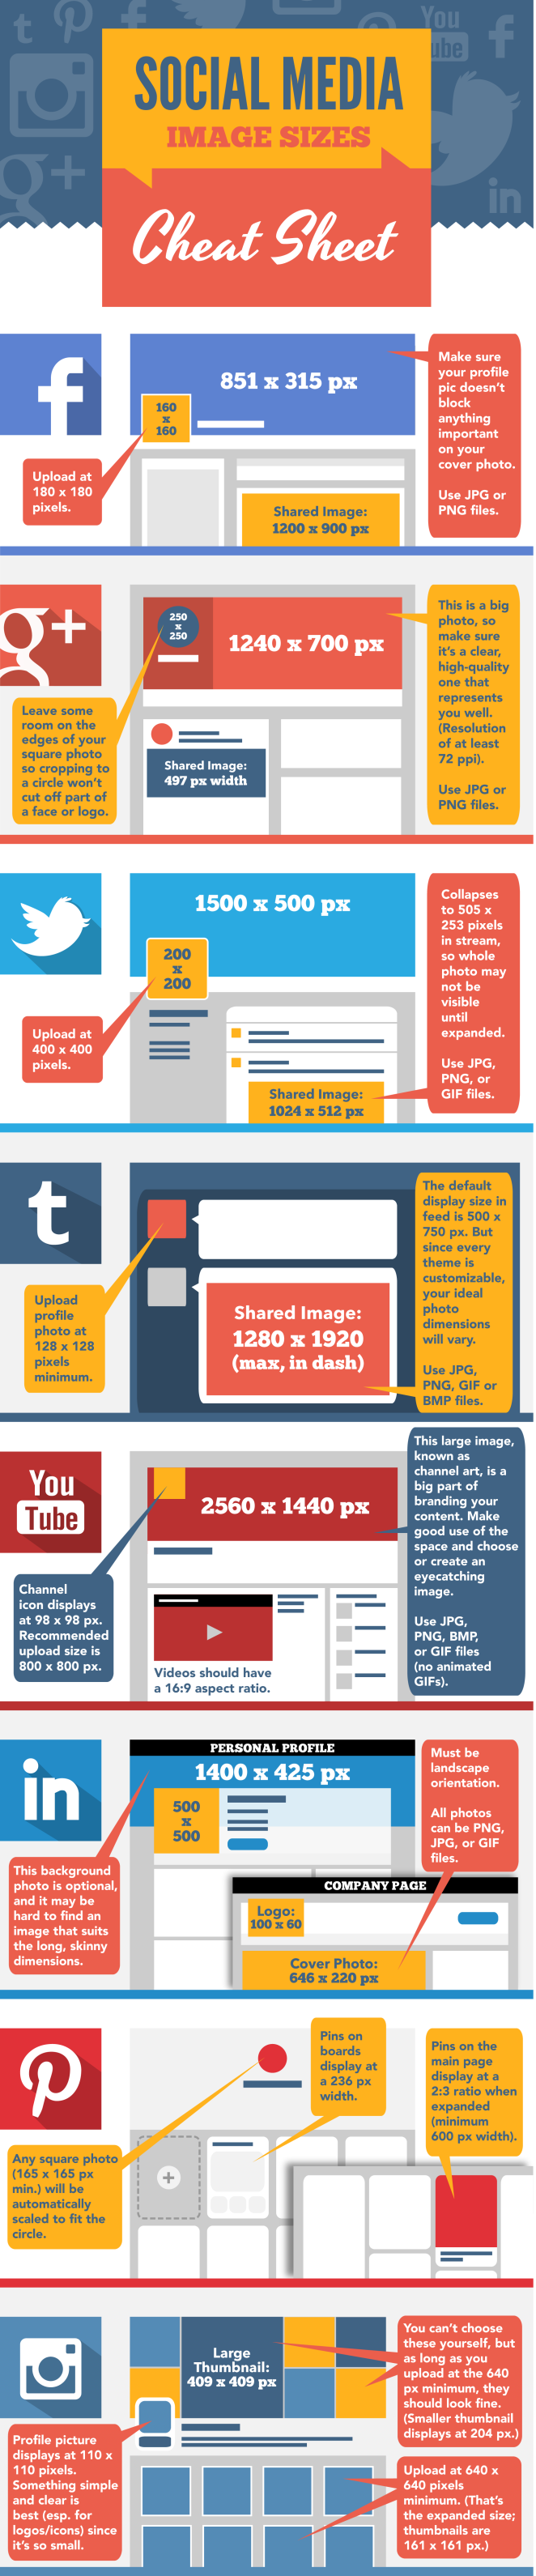 Canva_social-media-image-sizes-infographic-662x3181